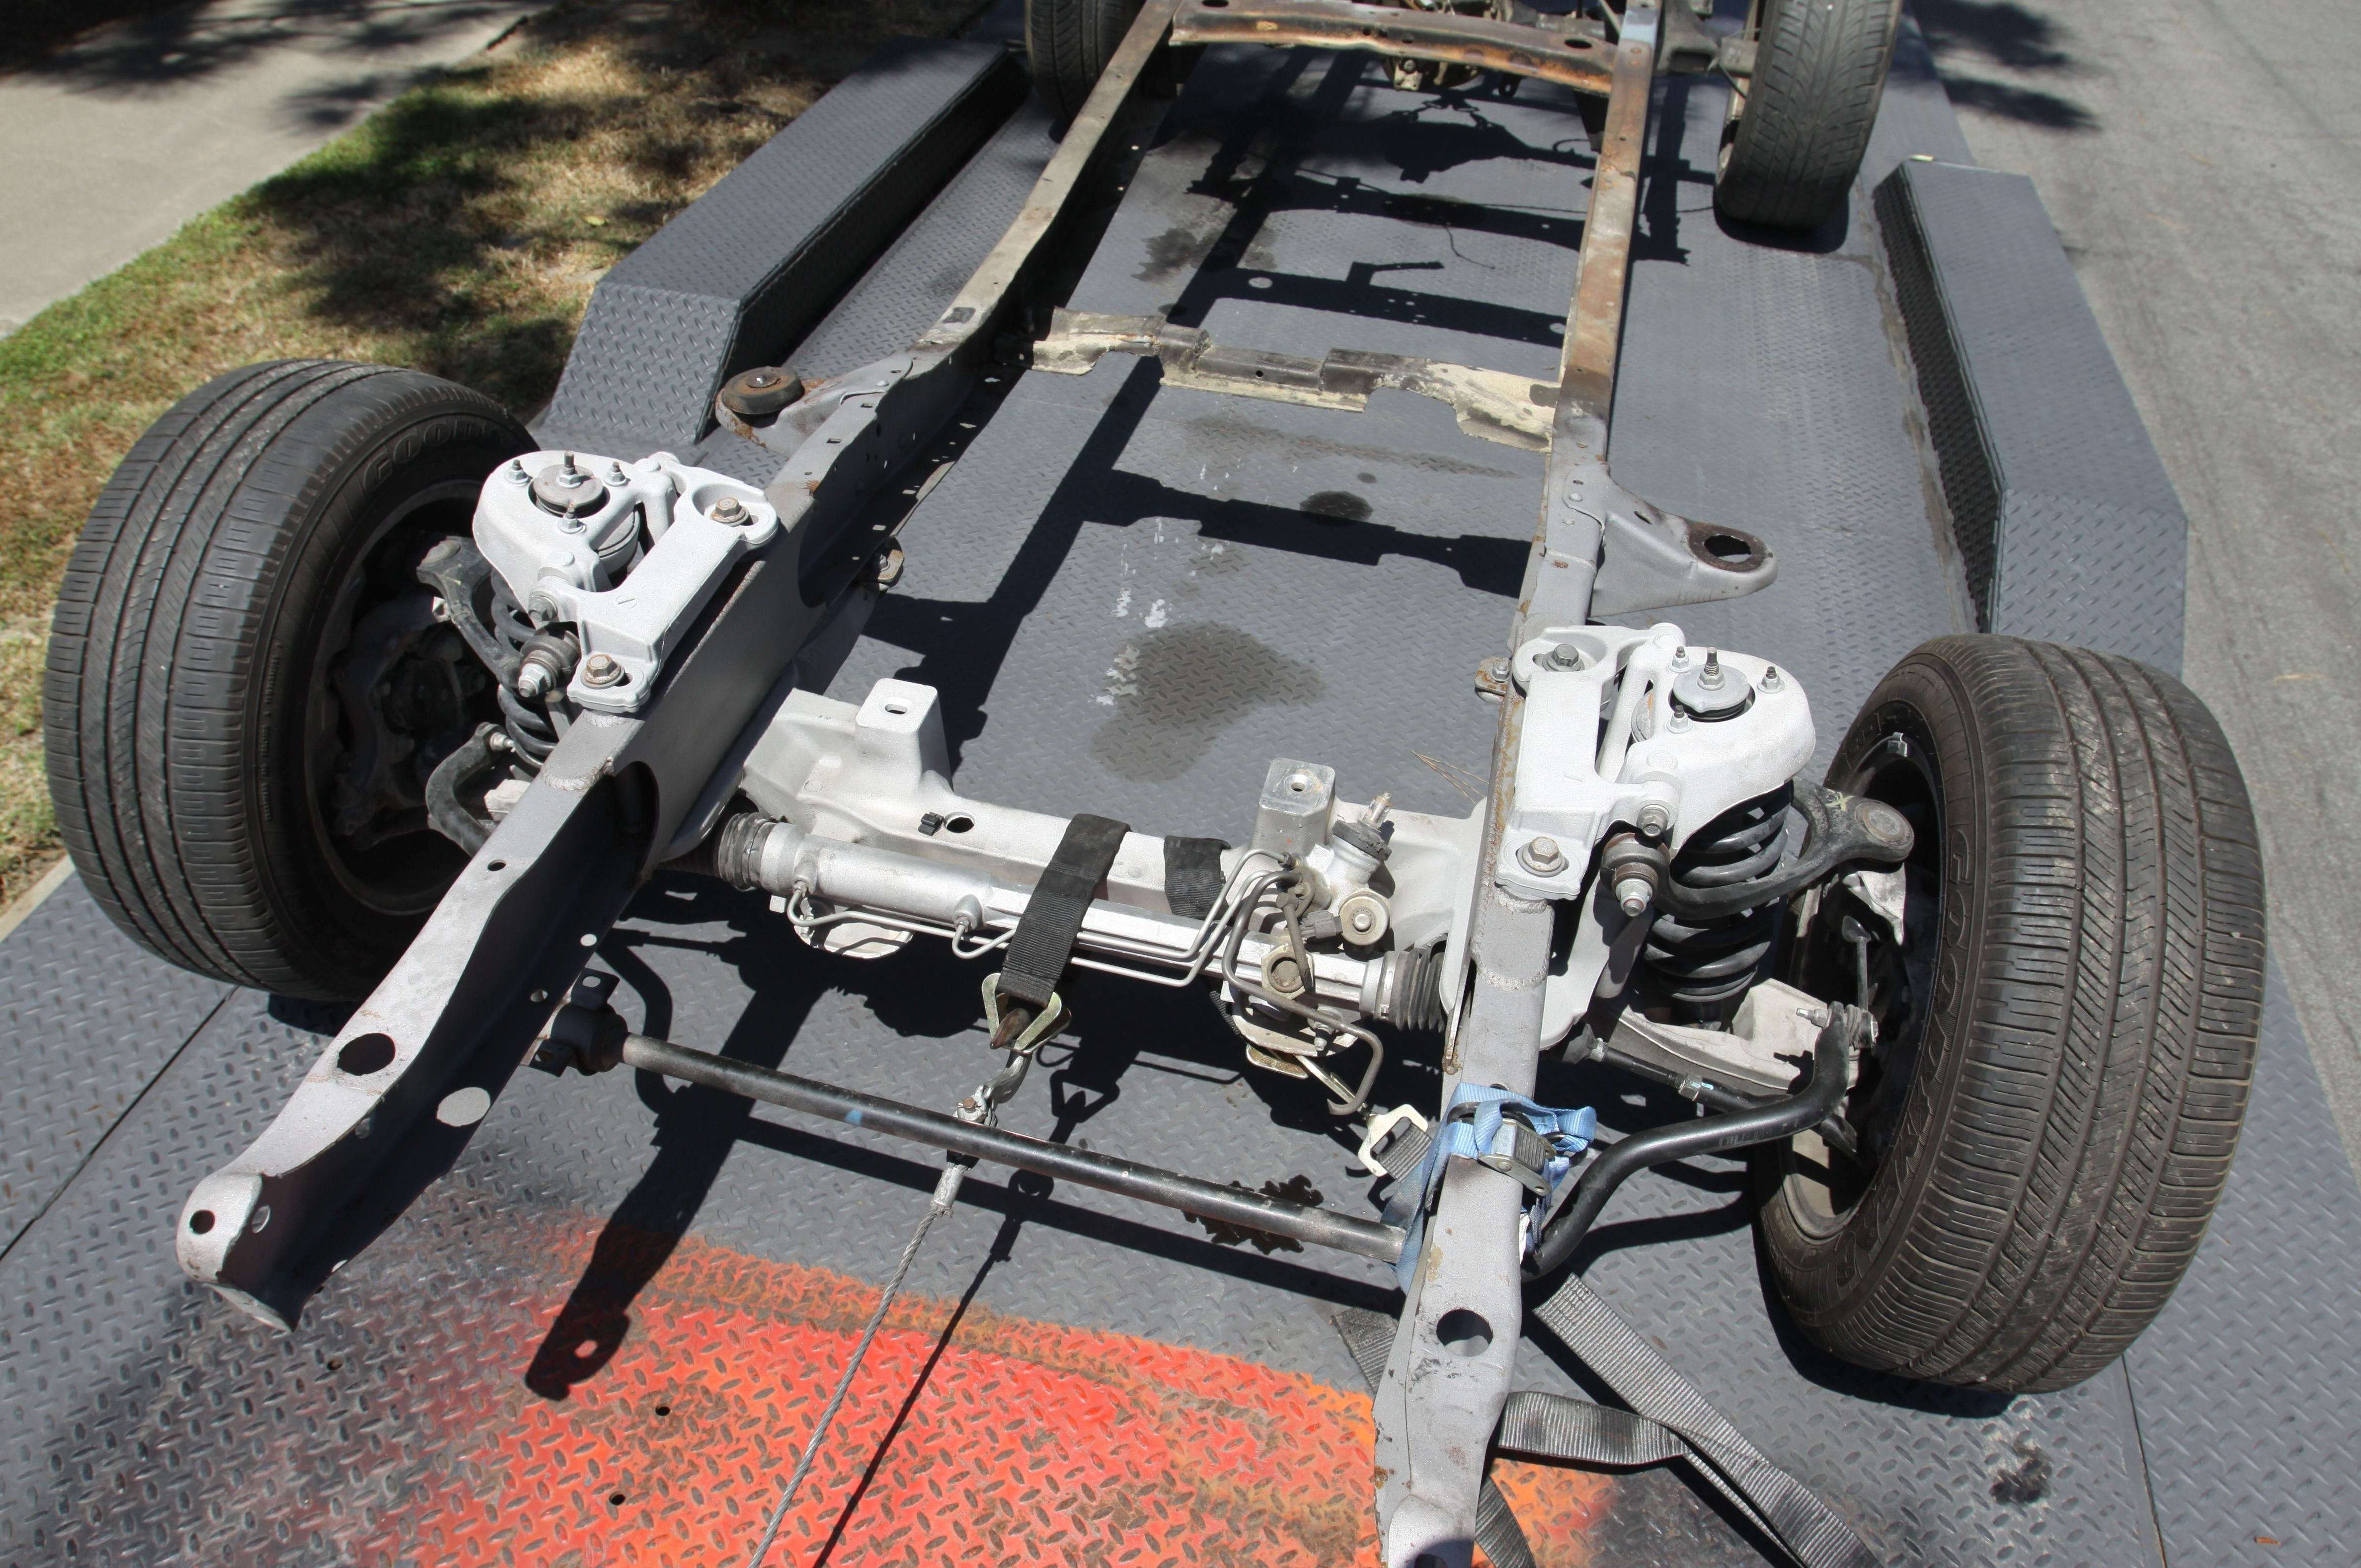 Diagram Of Car Chassis 1967 ford F 100 Crown Vic Chassis Lead Of Diagram Of Car Chassis